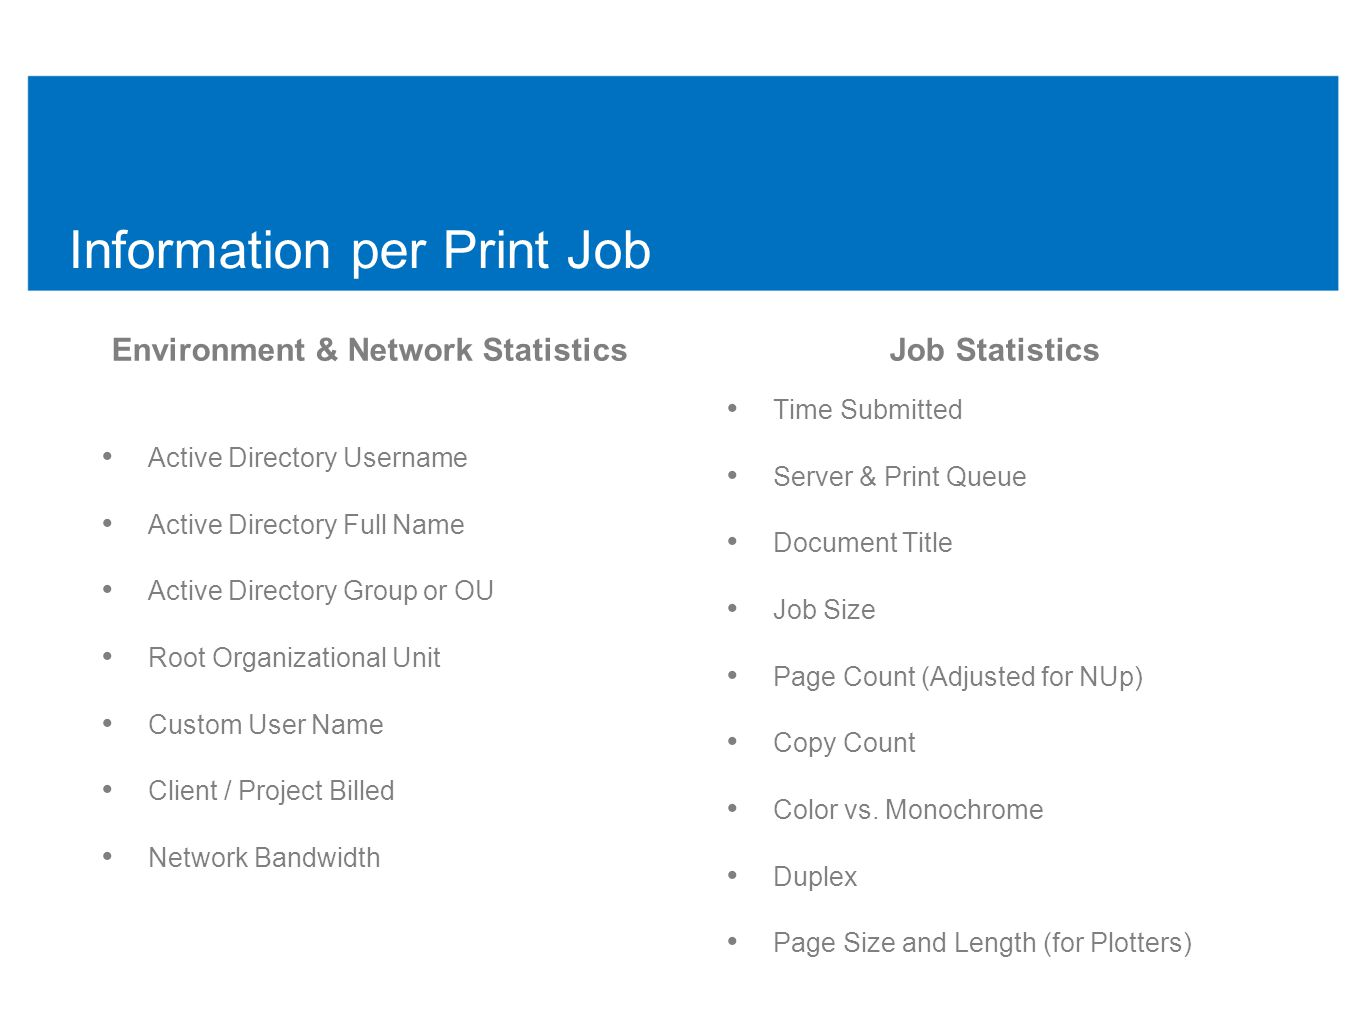 Information per Print Job Environment & Network Statistics • Active Directory Username • Active Directory Full Name • Active Directory Group or OU • Root Organizational Unit • Custom User Name • Client / Project Billed • Network Bandwidth Job Statistics • Time Submitted • Server & Print Queue • Document Title • Job Size • Page Count (Adjusted for NUp) • Copy Count • Color vs.